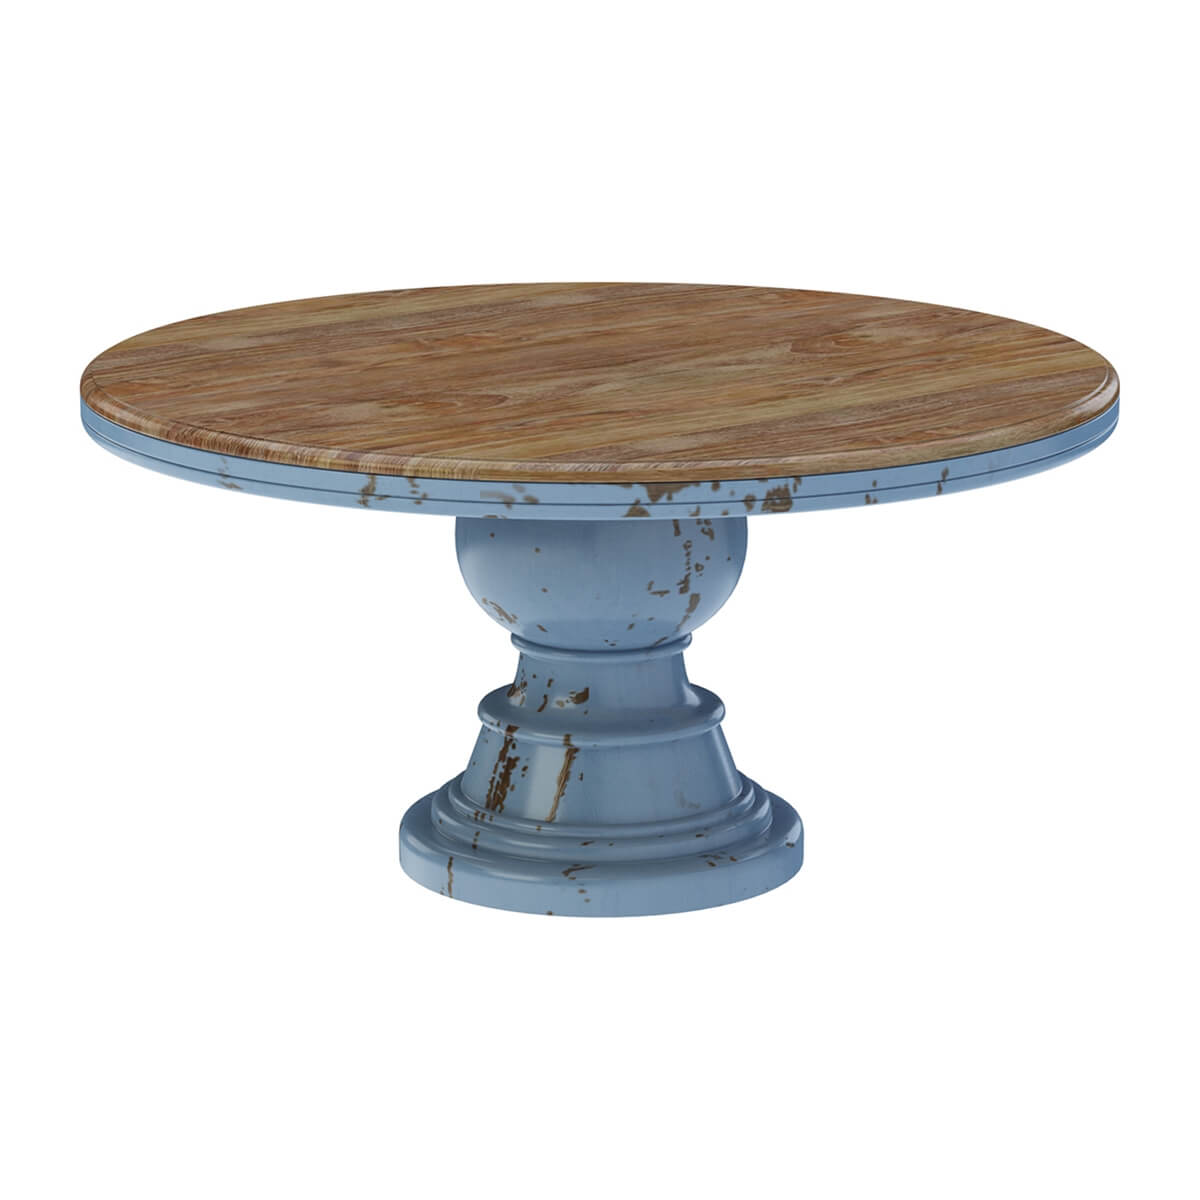 Nauvoo Farmhouse Solid Wood Pedestal Round Dining Table Chair Set